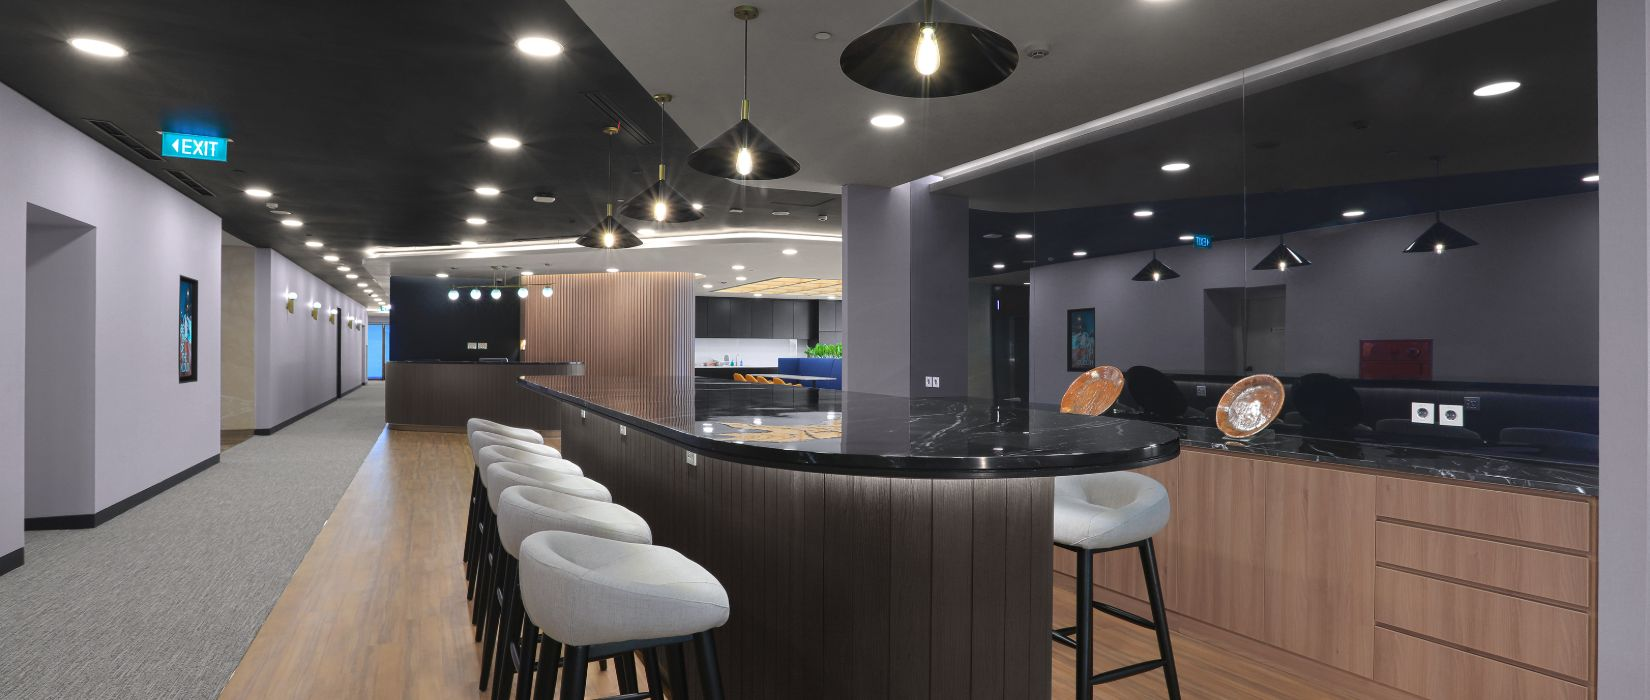 07. Pantry_Area